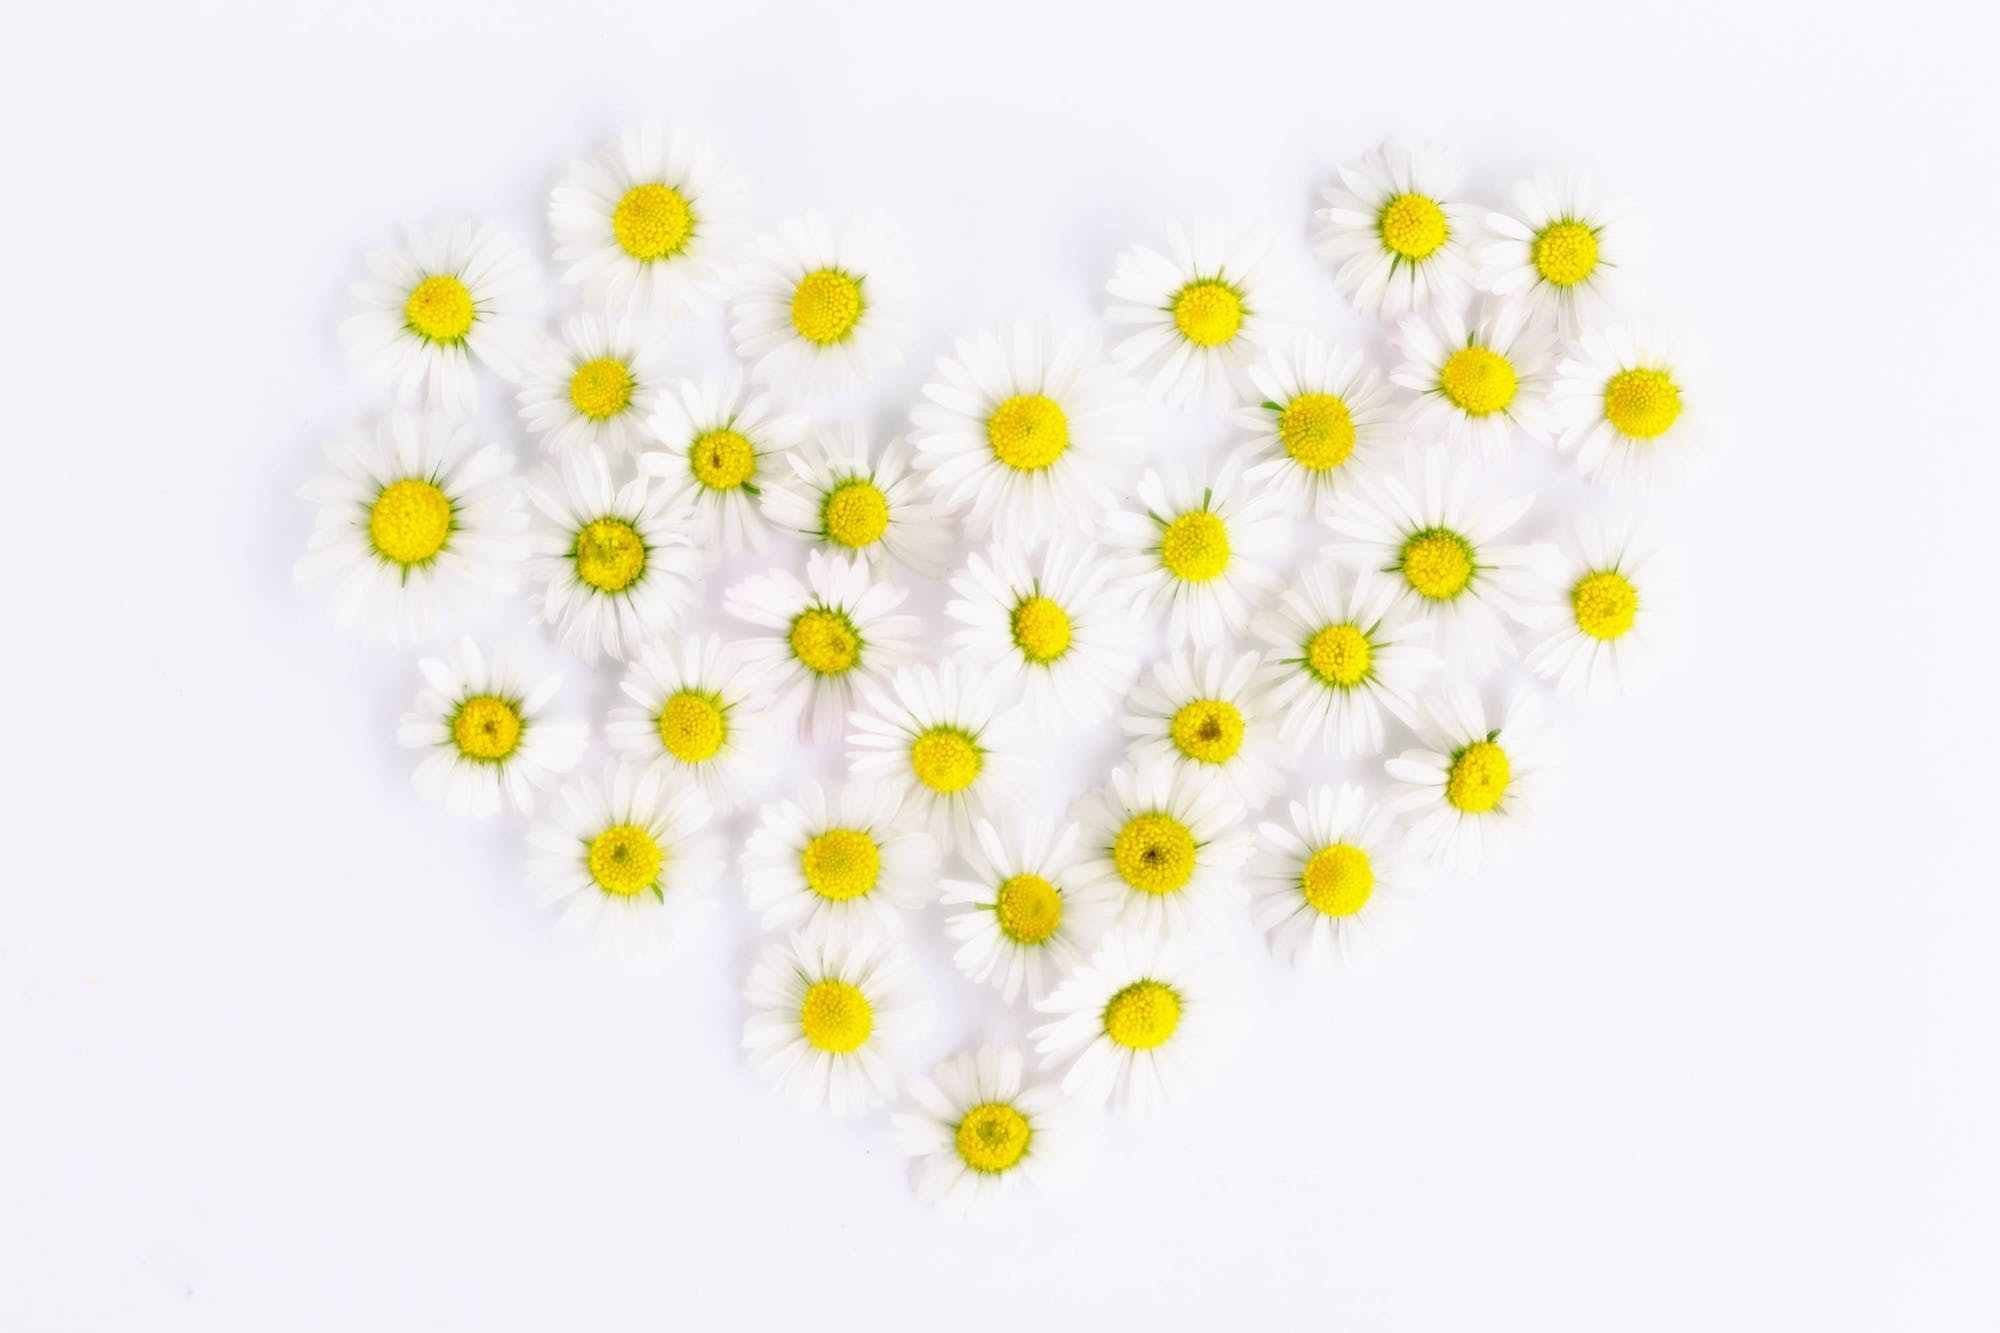 White and Yellow Flowers in Heart Form